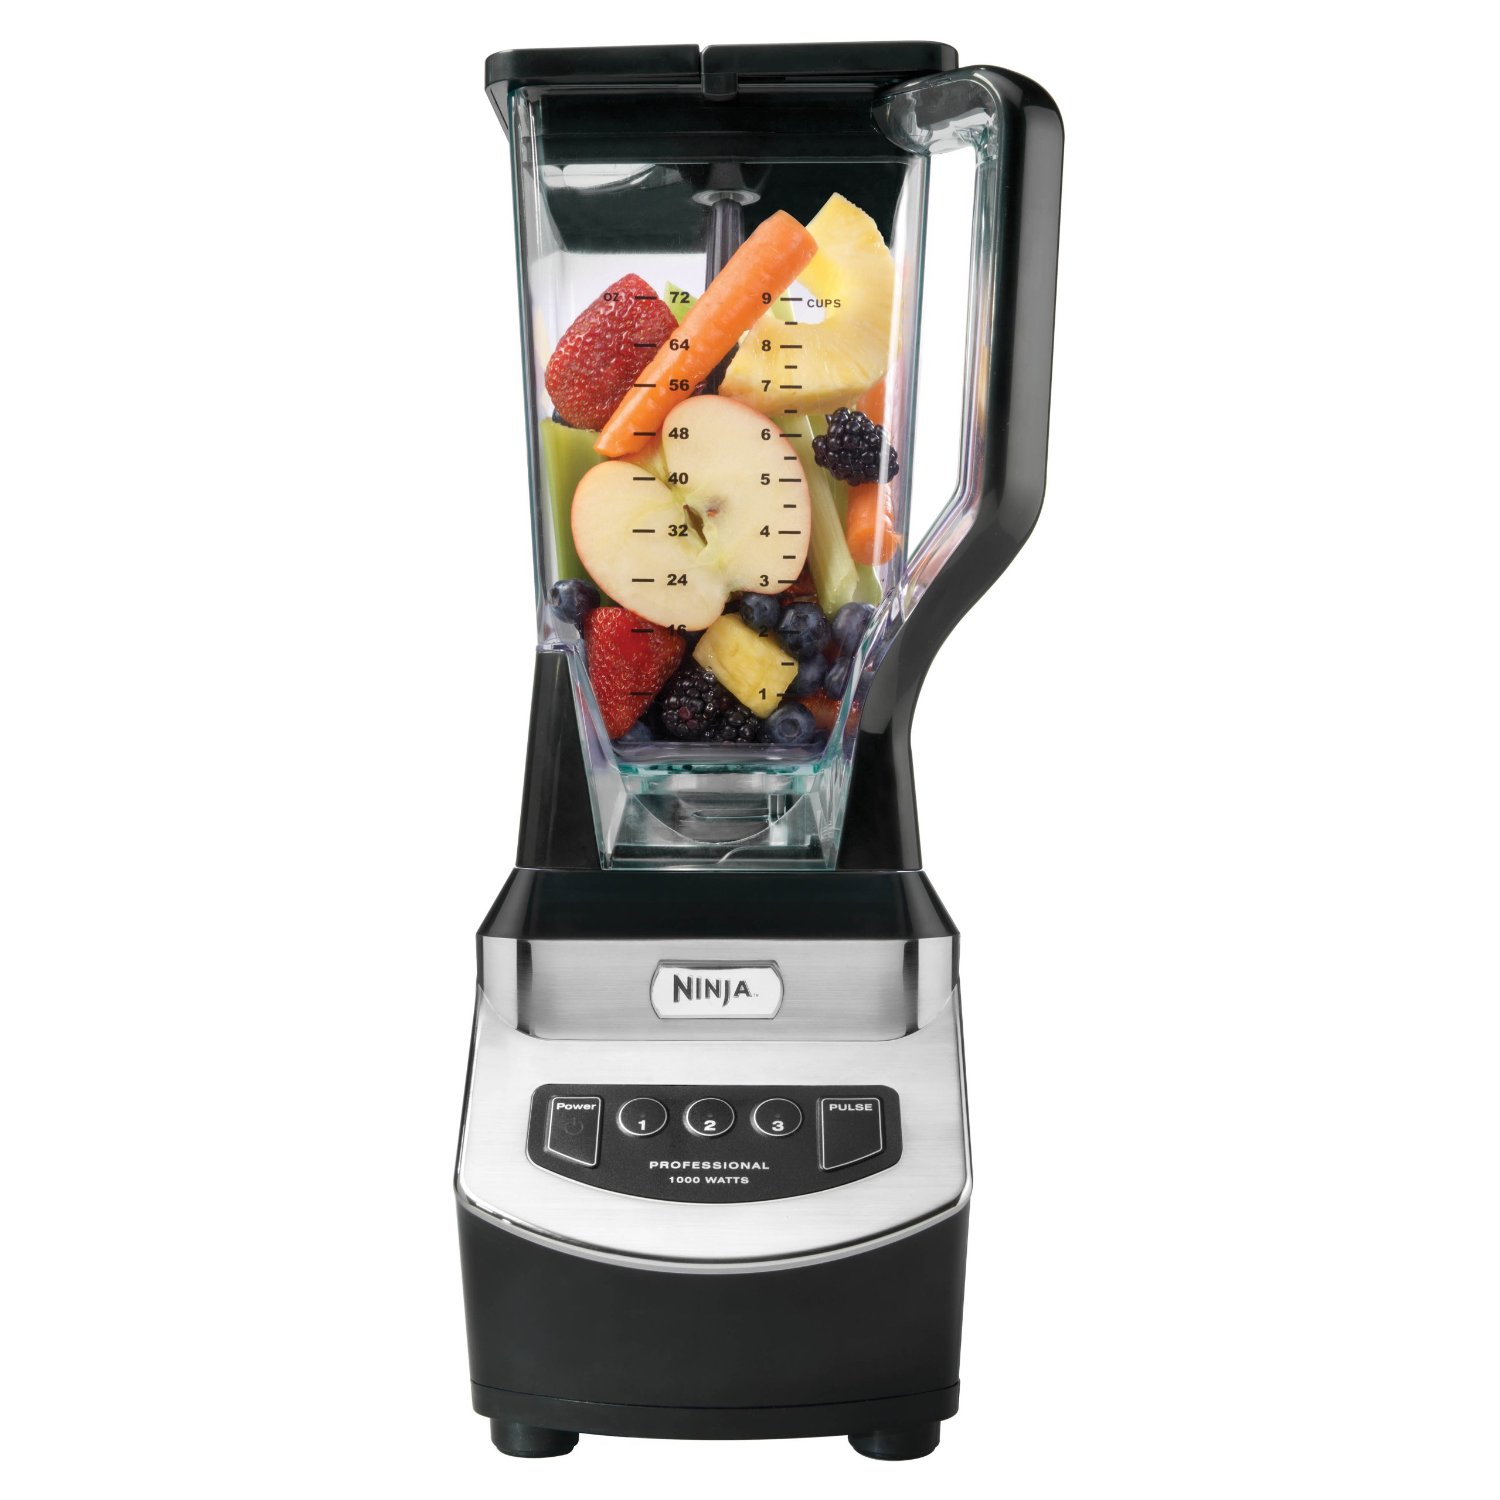 Ninja Blender Reviews: Everything You Wanted to Know